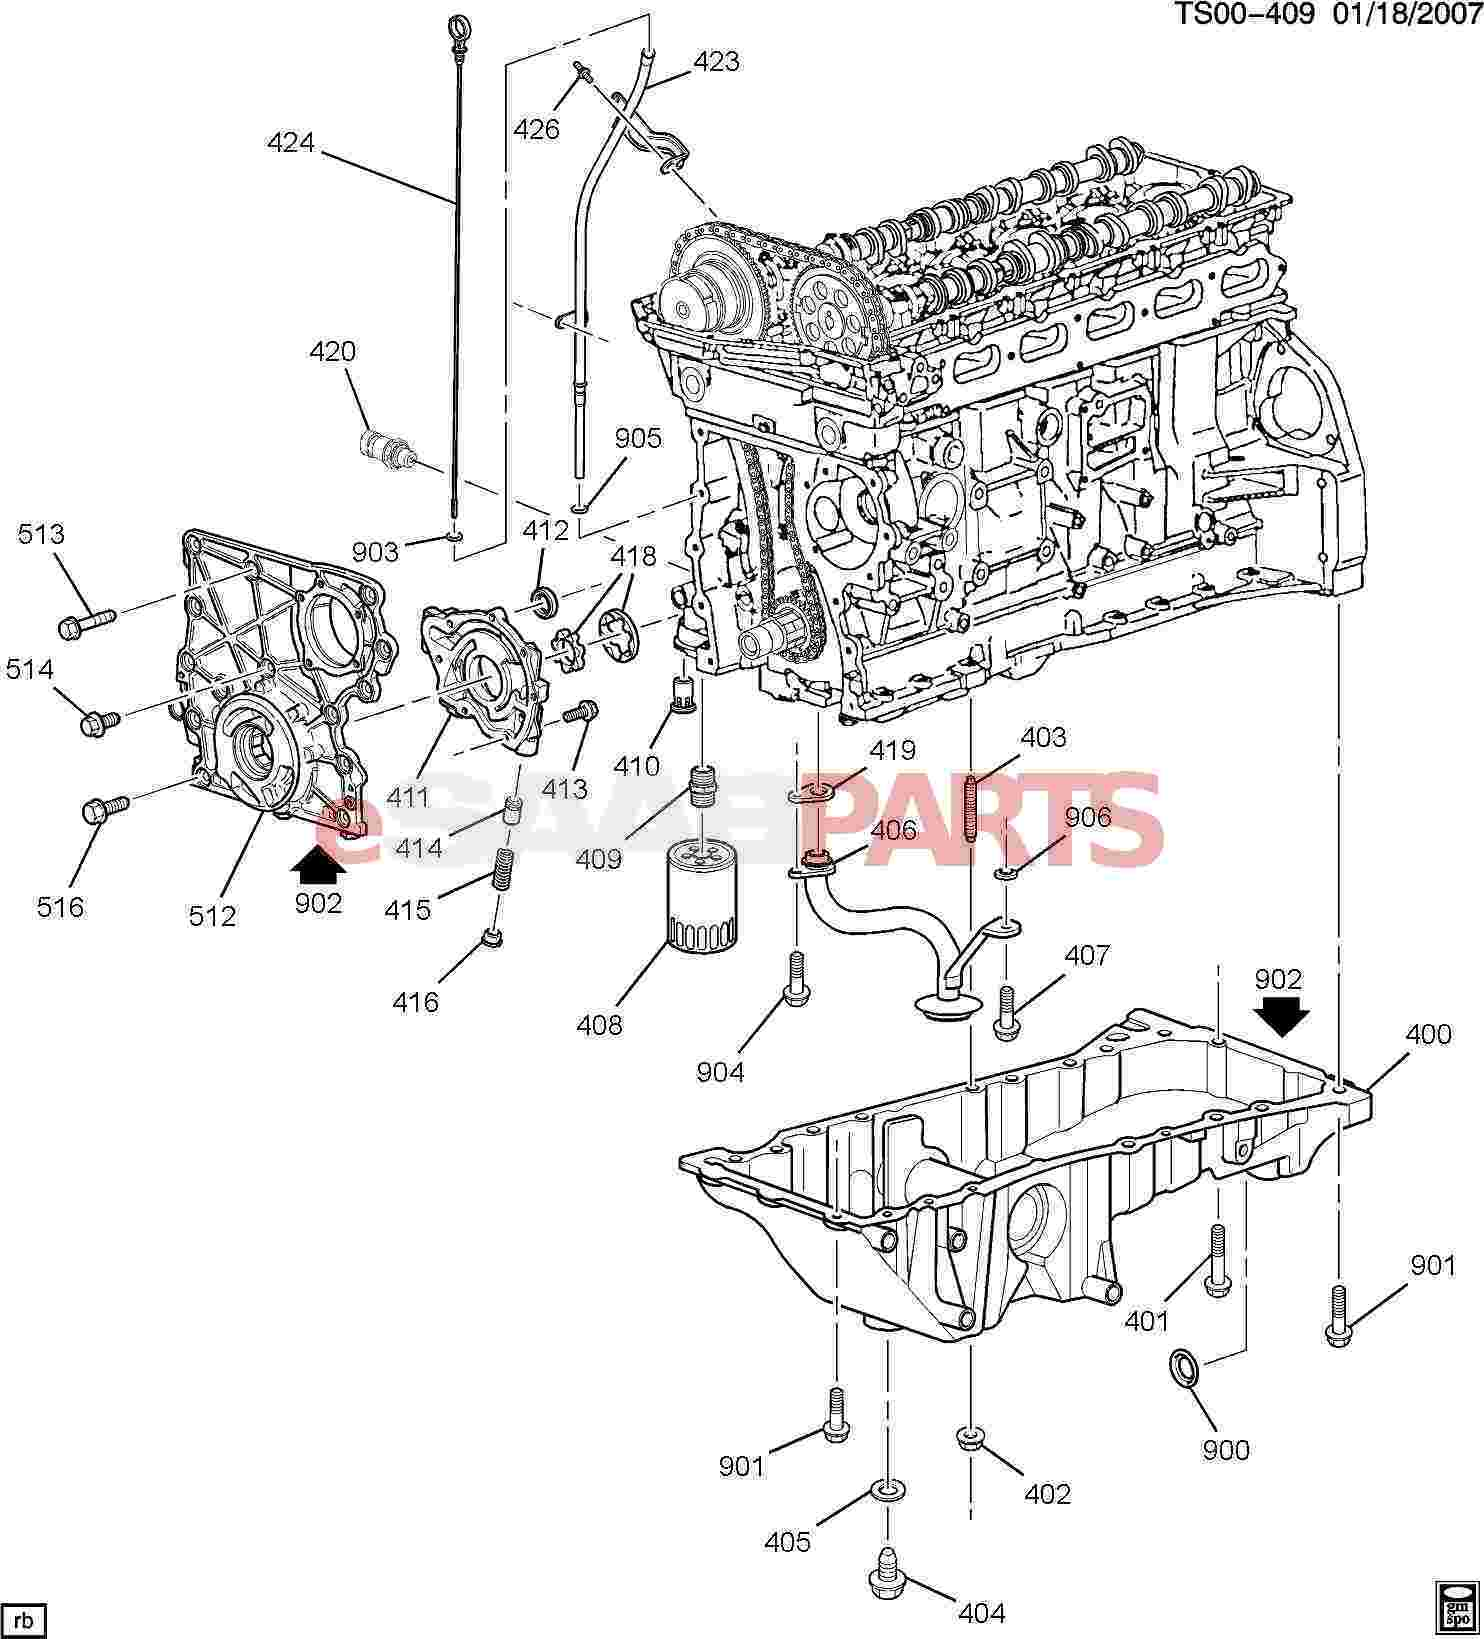 11562588 Saab Oil Drain Plug Genuine Parts From Chevy Sending Unit Wiring Diagram Image 404